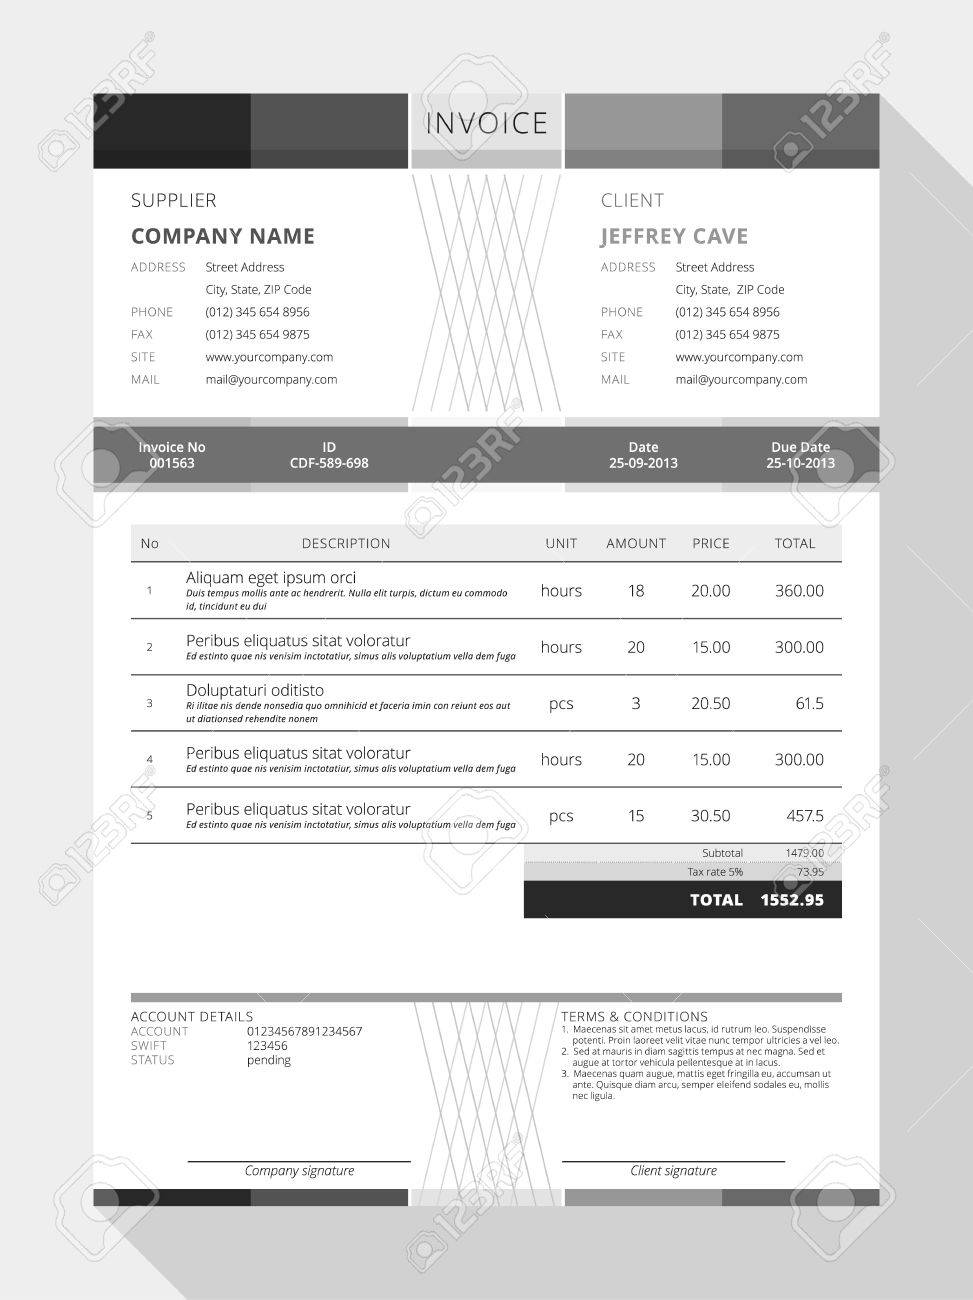 Aldiablosus  Sweet Design An Invoice  Professional Graphic Design Invoice  With Lovable Vector Customizable Invoice Form Template Design Vector   Design An Invoice With Lovely Invoice Template Design Also Carbonless Invoice Forms In Addition Usps Invoice Number And Crv Invoice As Well As Invoice Example Template Additionally Free Invoice Template Printable From Happytomco With Aldiablosus  Lovable Design An Invoice  Professional Graphic Design Invoice  With Lovely Vector Customizable Invoice Form Template Design Vector   Design An Invoice And Sweet Invoice Template Design Also Carbonless Invoice Forms In Addition Usps Invoice Number From Happytomco